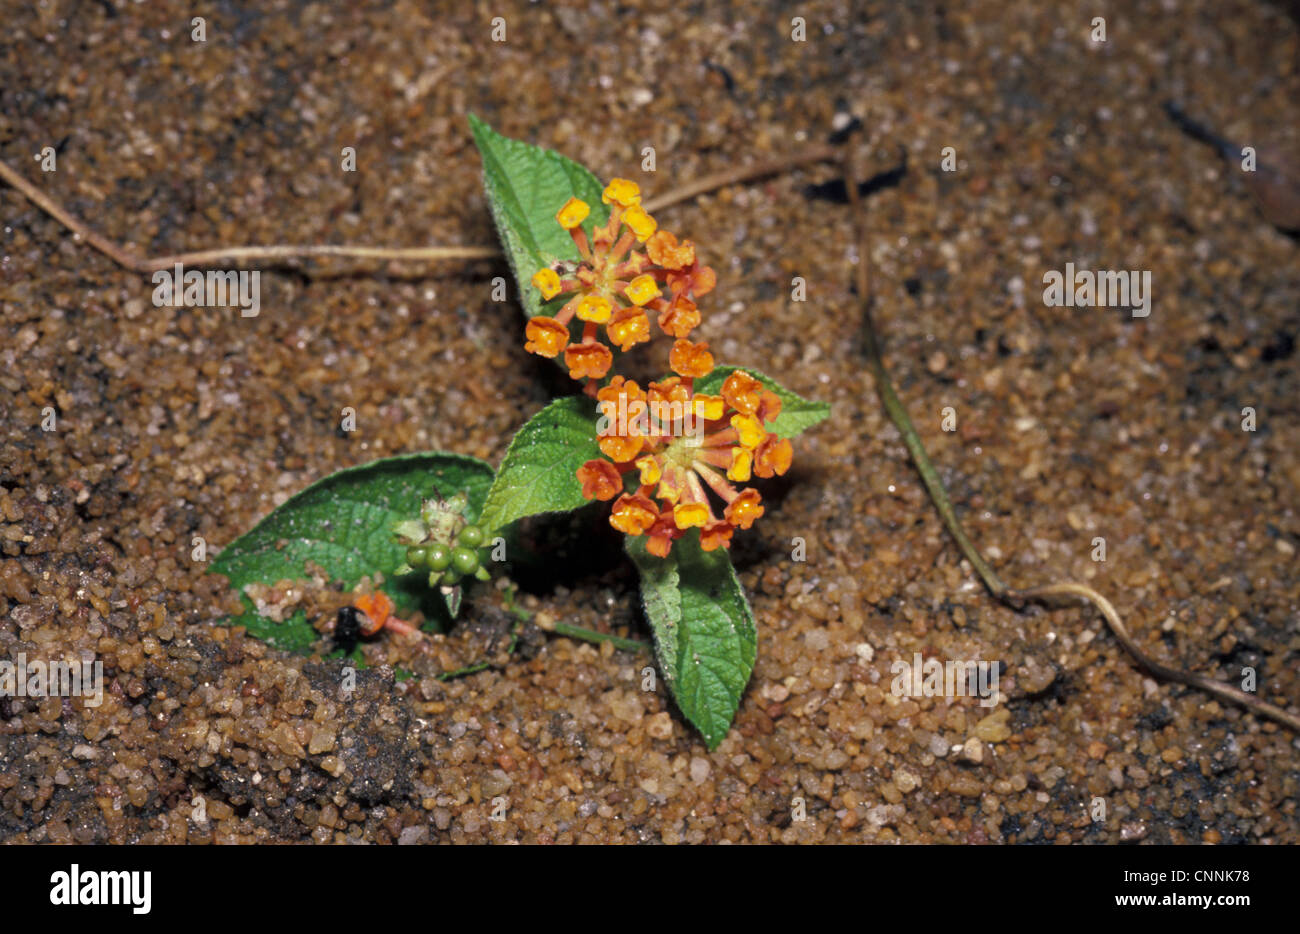 Sleeper Weed - Madagascar - Stock Image